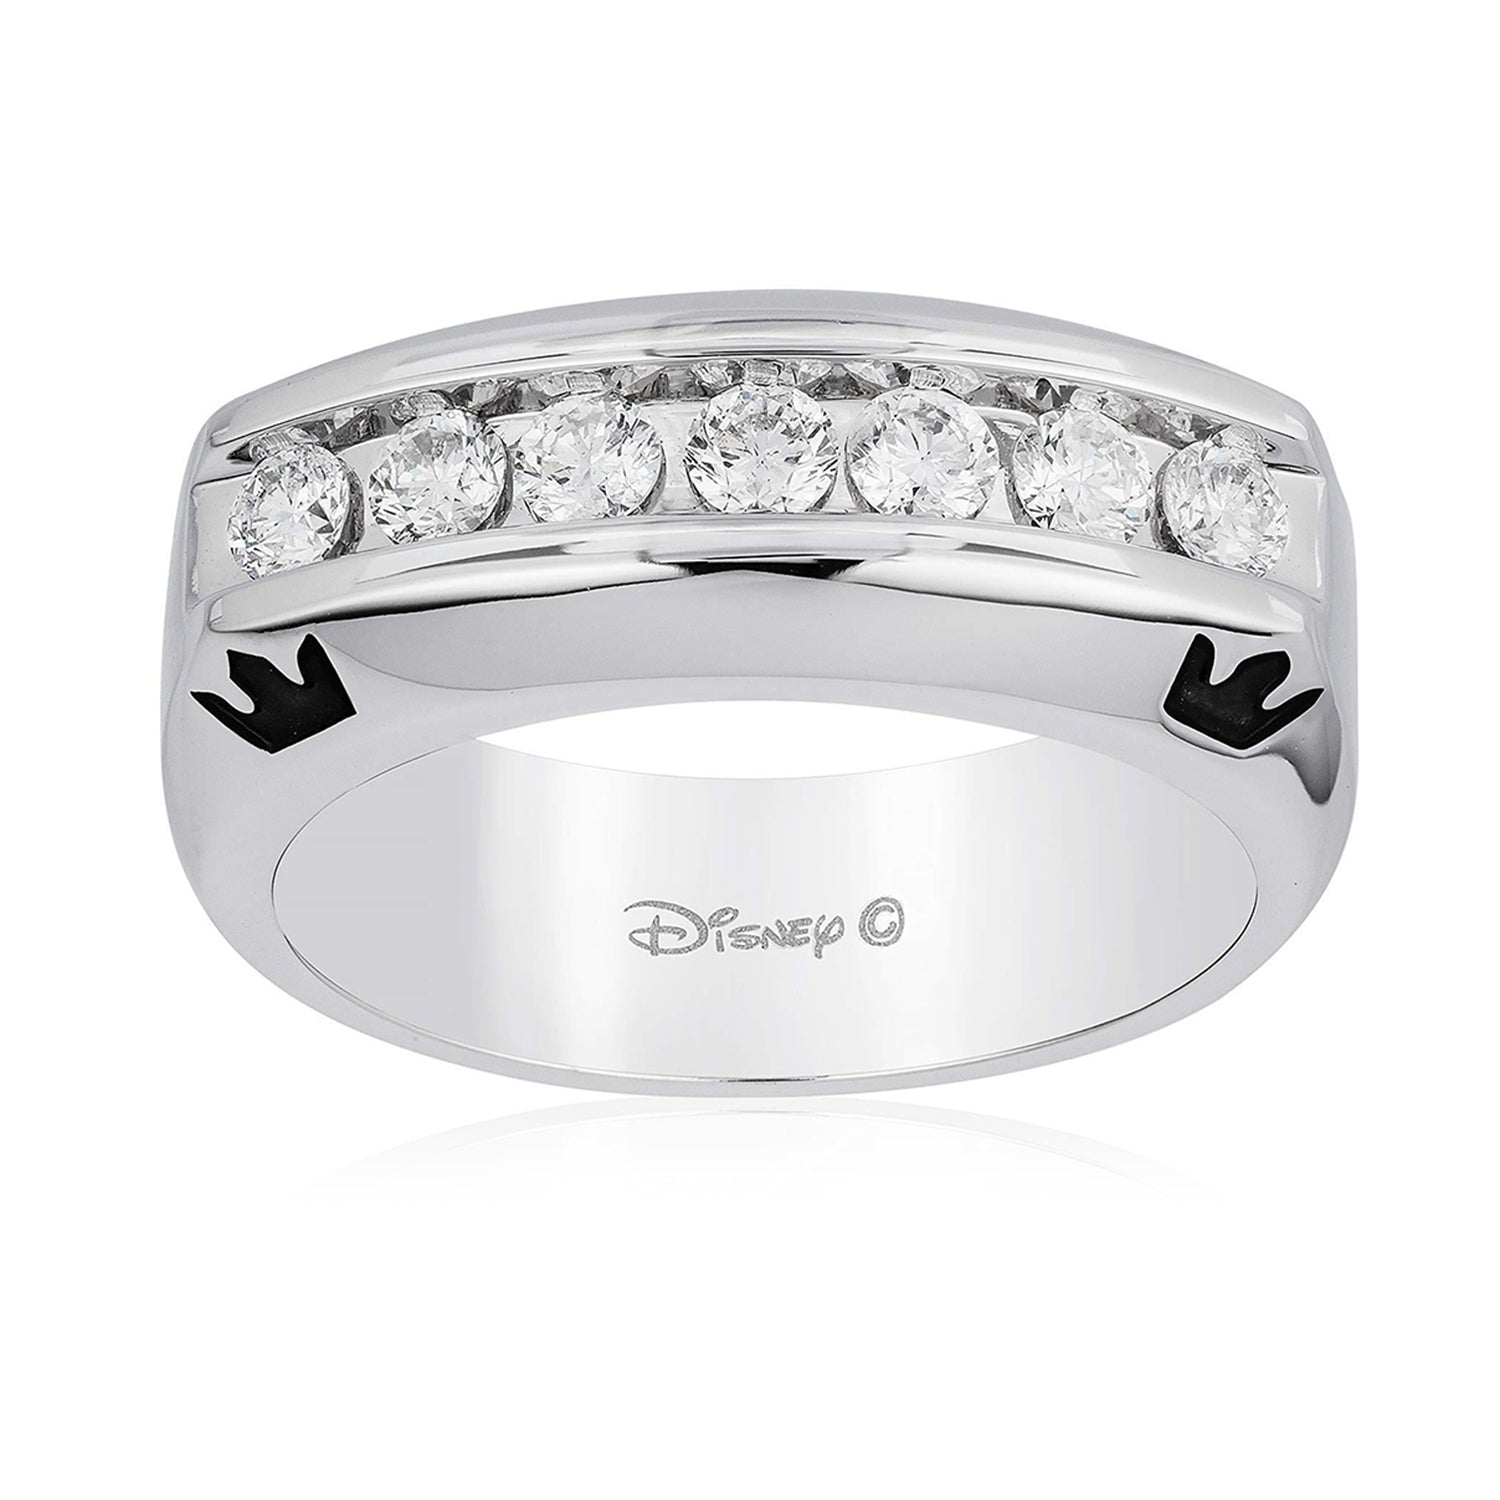 enchanted_disney-prince_fine_jewelry_14k_white_gold_3_4_cttw_mens_ring-14k_white_gold_3/4CTTW_1